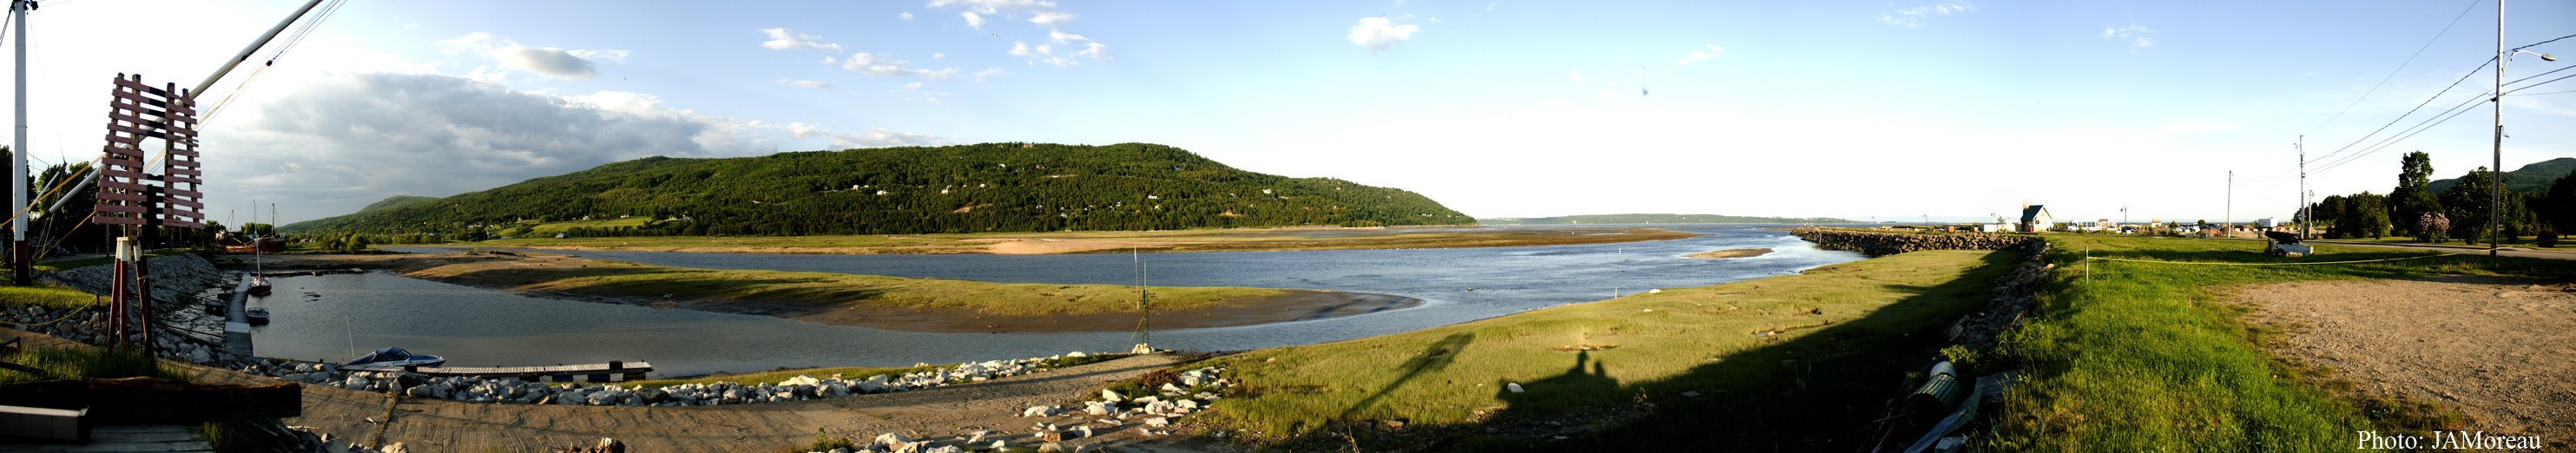 Panoramique Baie St-Paul 1